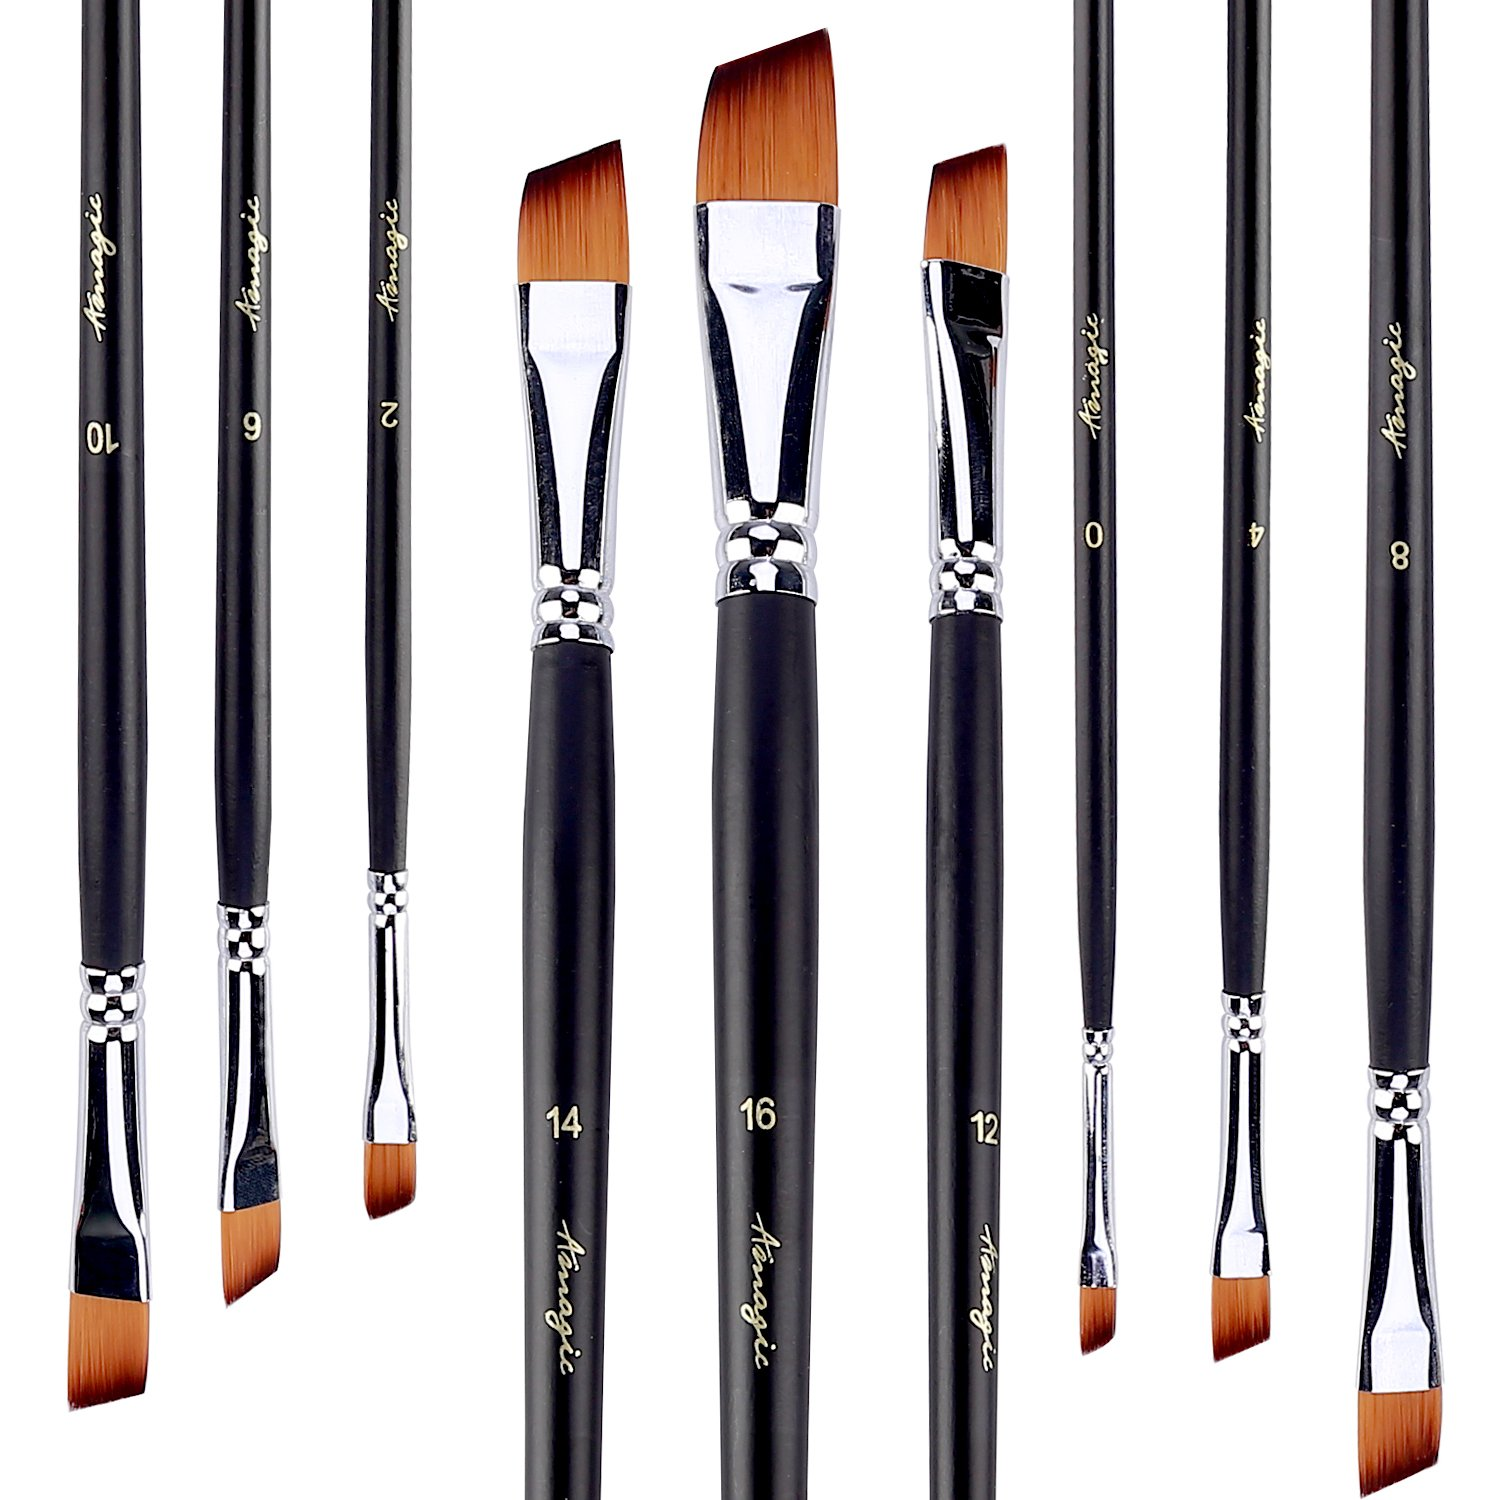 Angled Flat Tipped Brushes by Amagic Art Angular Paintbrush Set for Acrylic Oil Watercolor, 9 Pieces Face and Body Professional Painting Kits with Synthetic Nylon Tips GUANMAXUN 4336960974